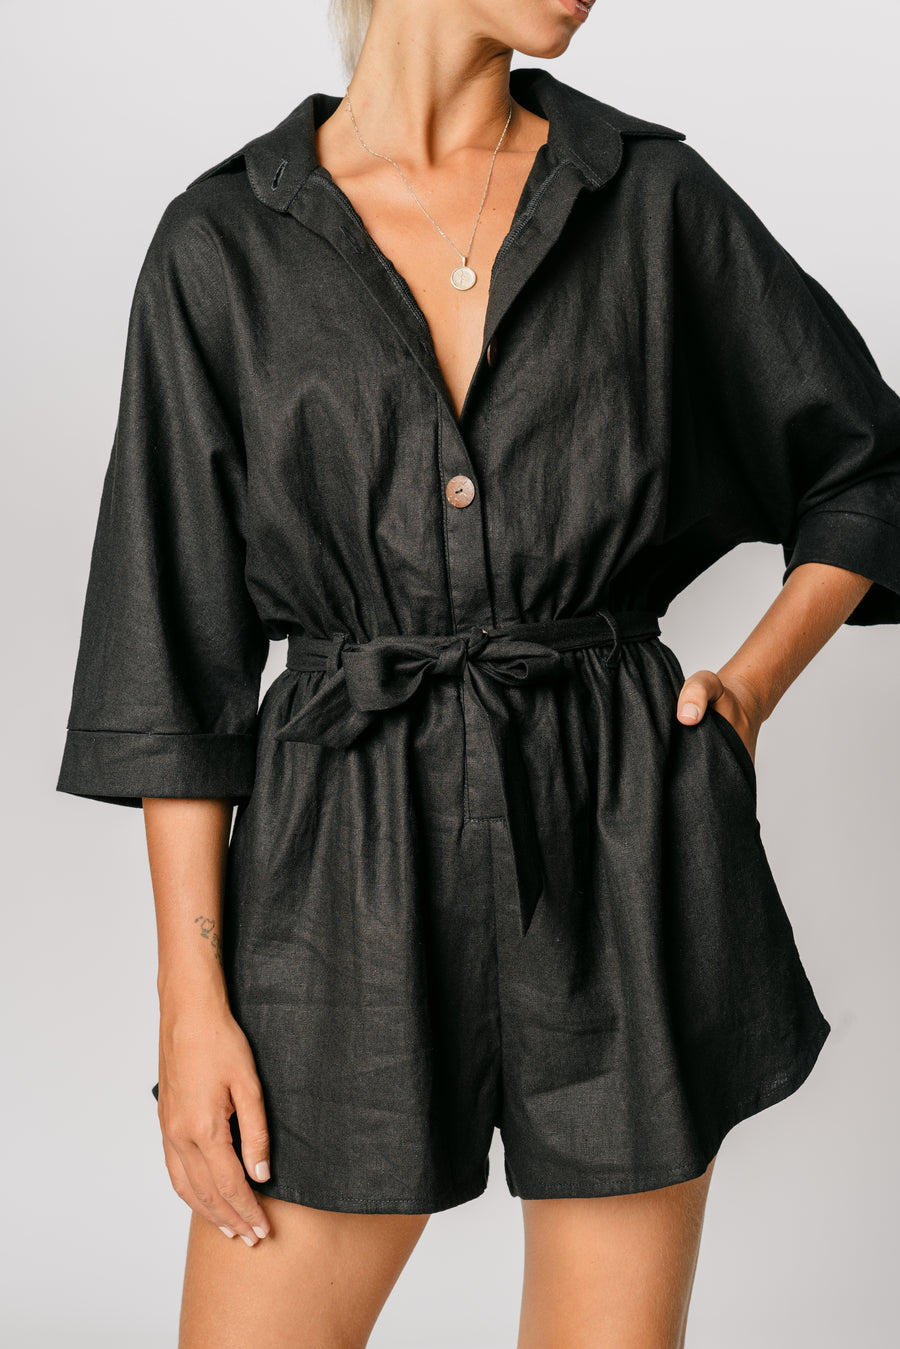 Slider Jumpsuit